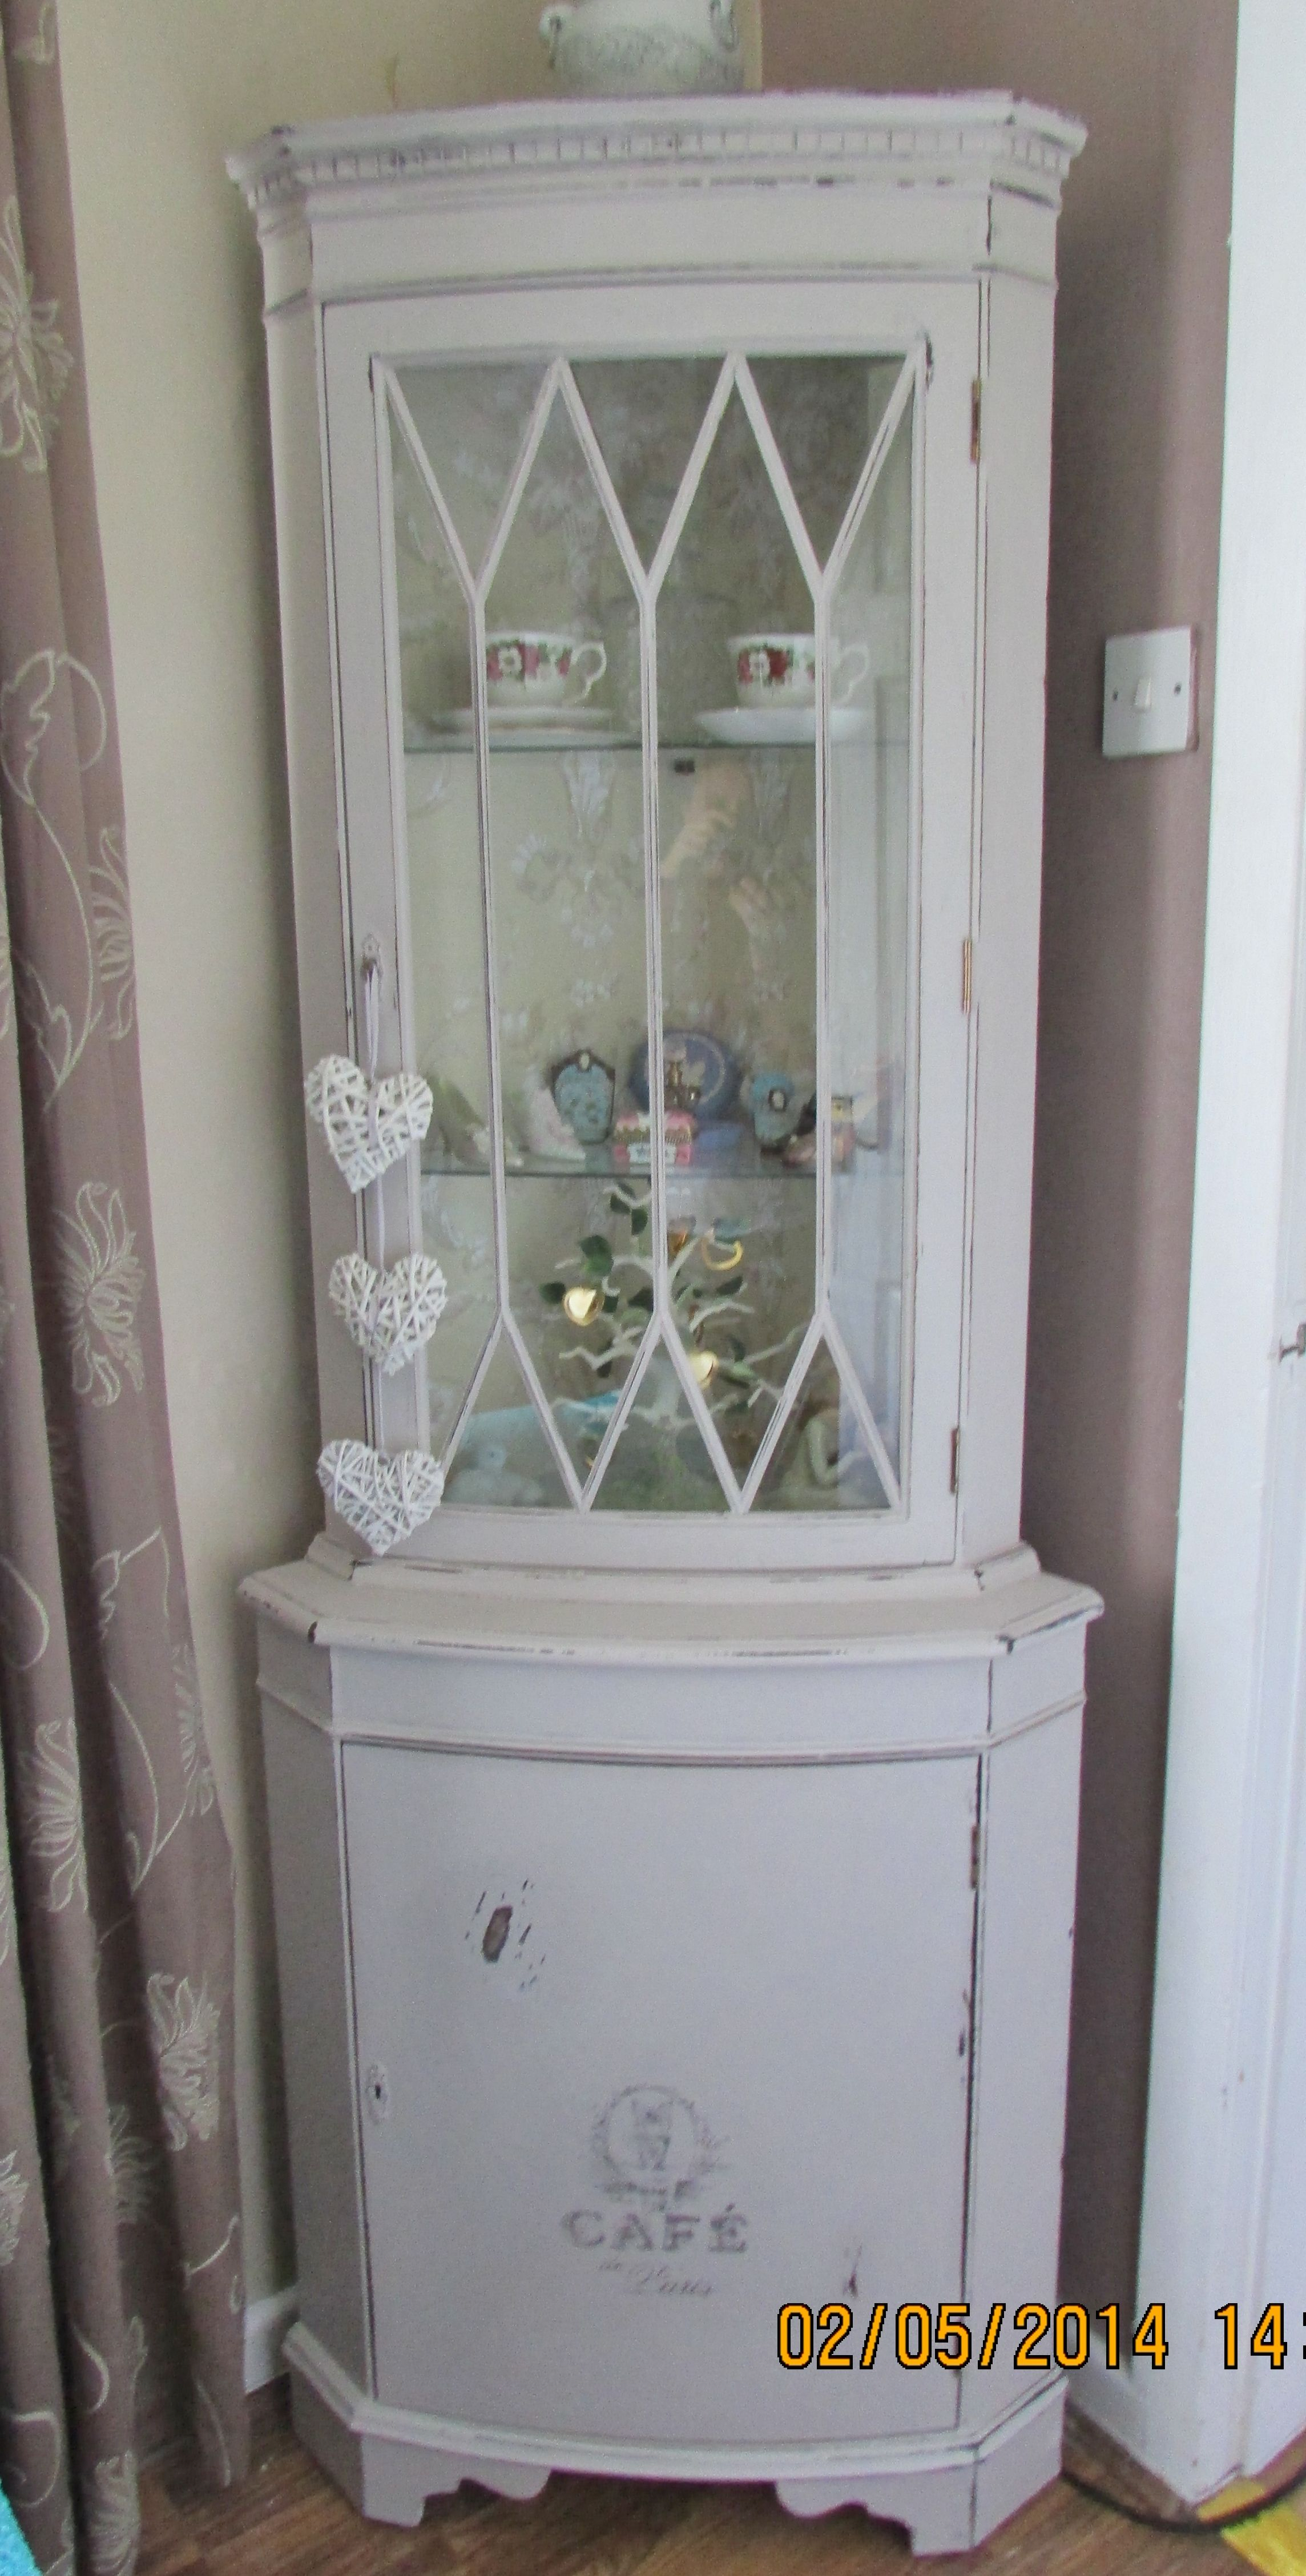 Shabby chic corner unit By Donna Wilkinson & Shabby chic corner unit By Donna Wilkinson | Shabby chic | Pinterest ...